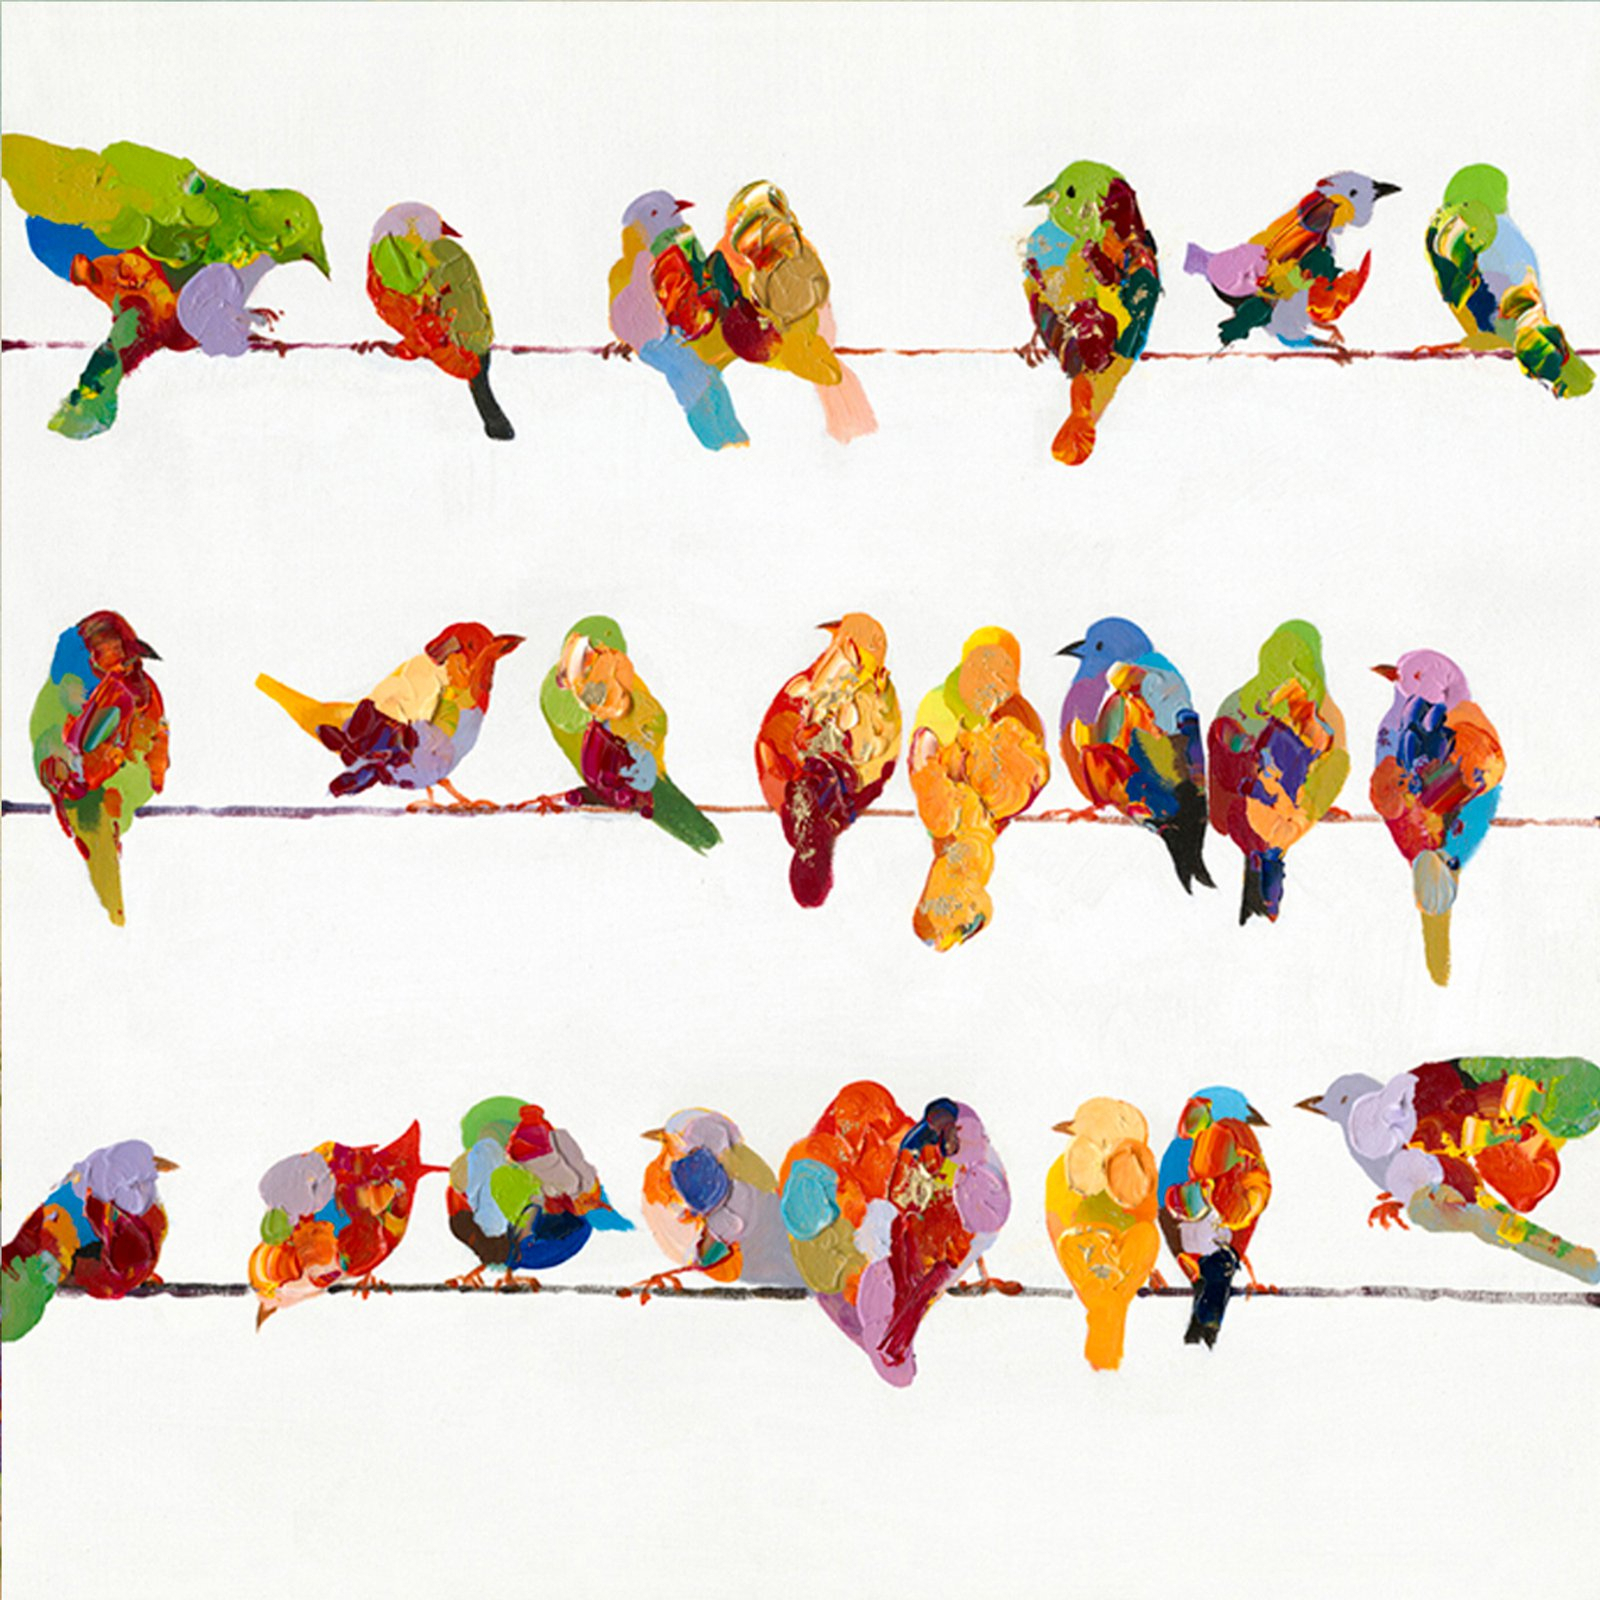 Yosemite Home Decor Birds On A Wire Ii Wall Art – Walmart In Well Known Birds On A Wire Wall Decor (View 13 of 20)